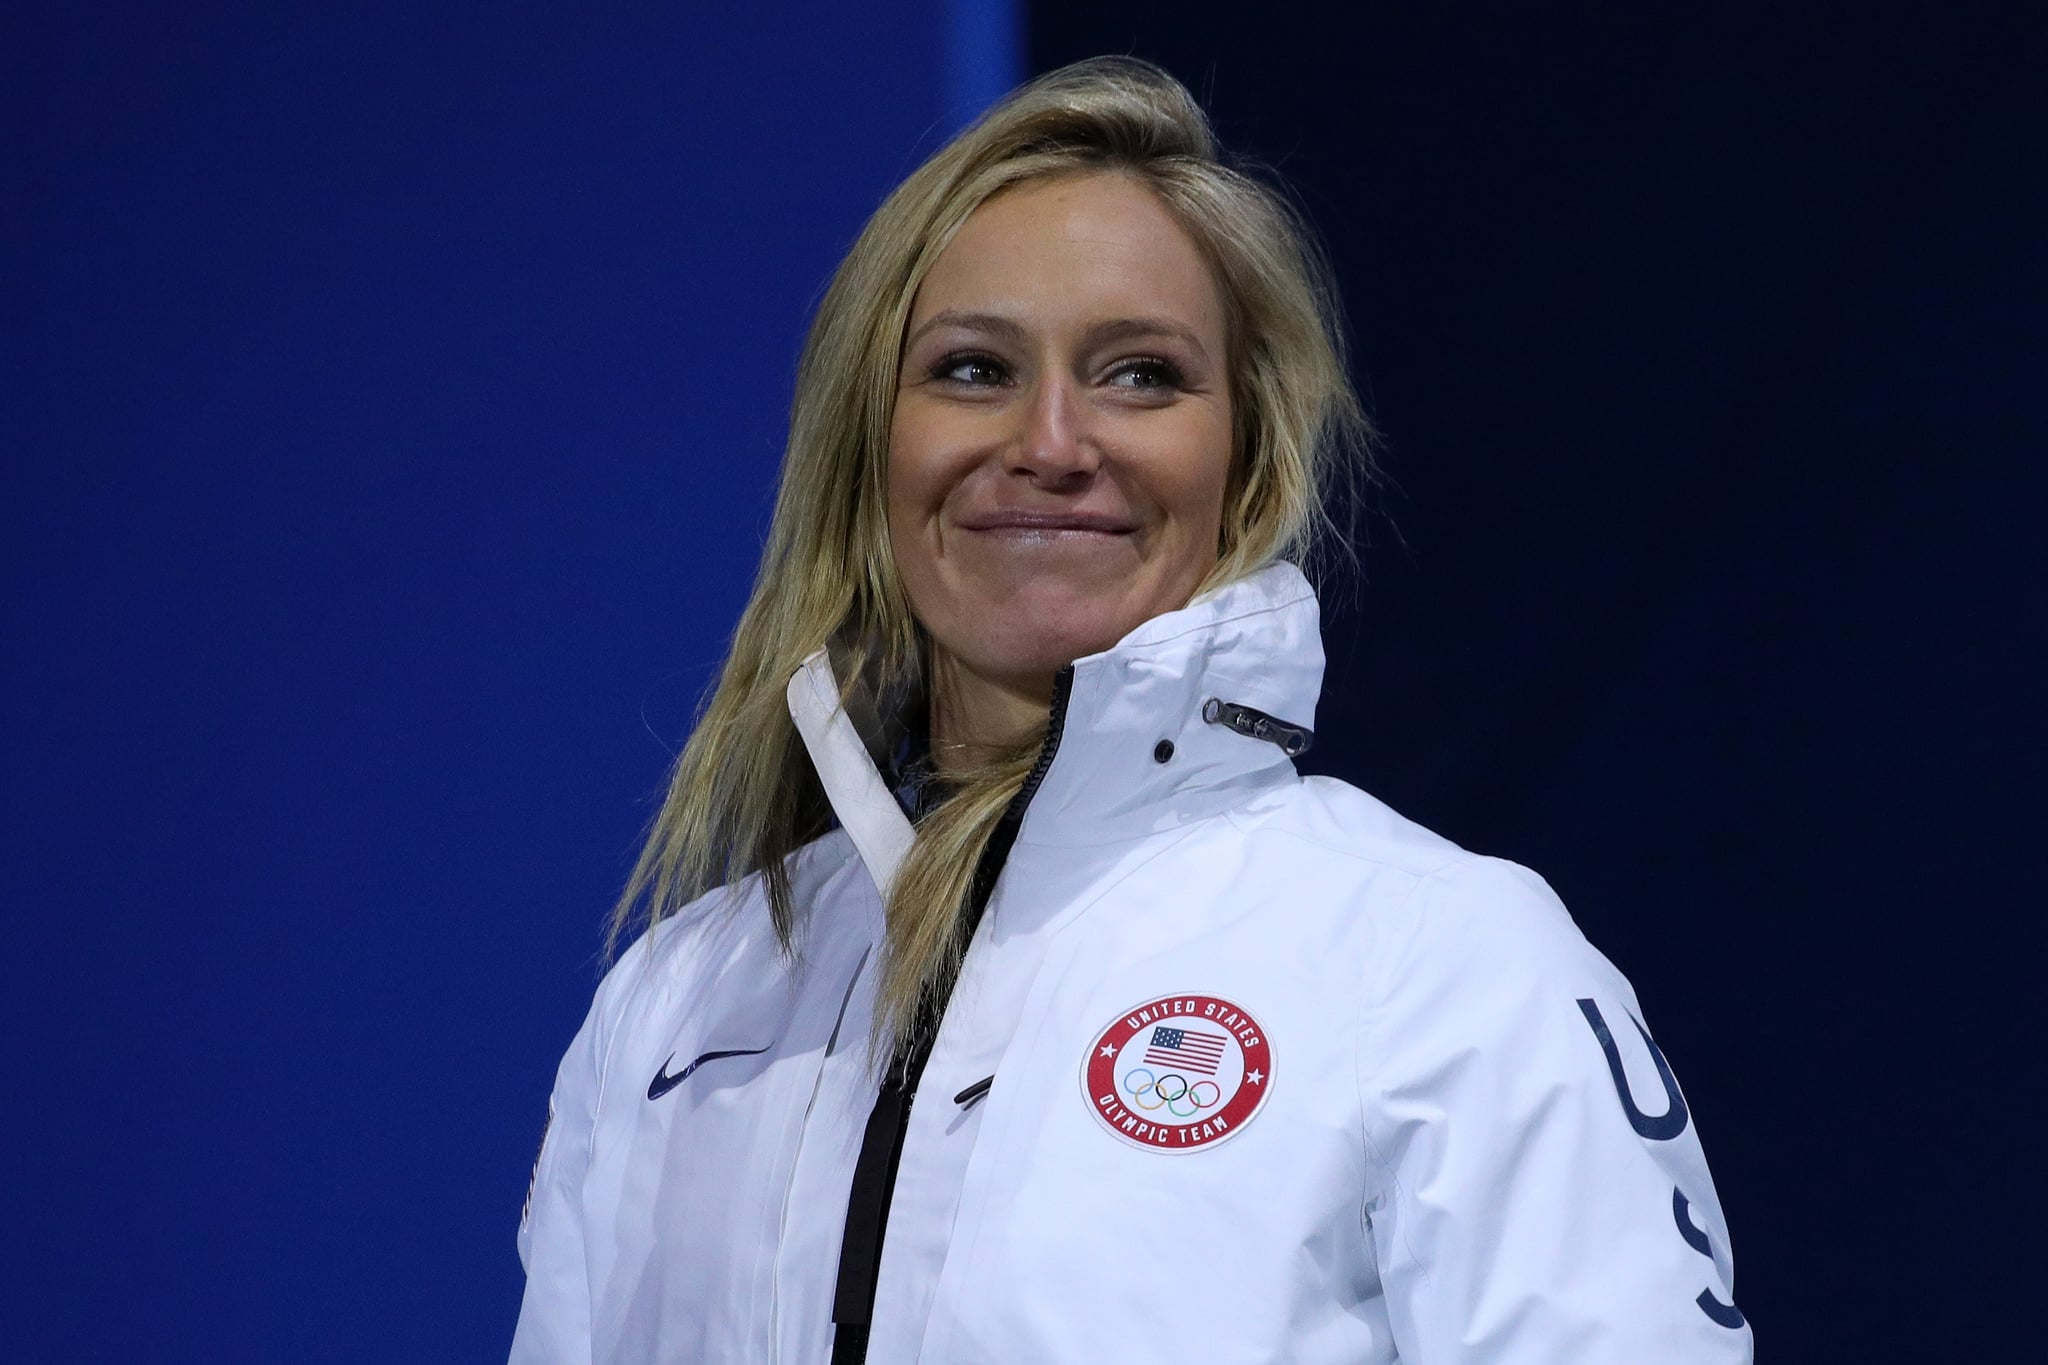 Jamie Anderson, Olympic Snowboarder, Explains Why Yoga Is Her Favorite Form of Cross-Training